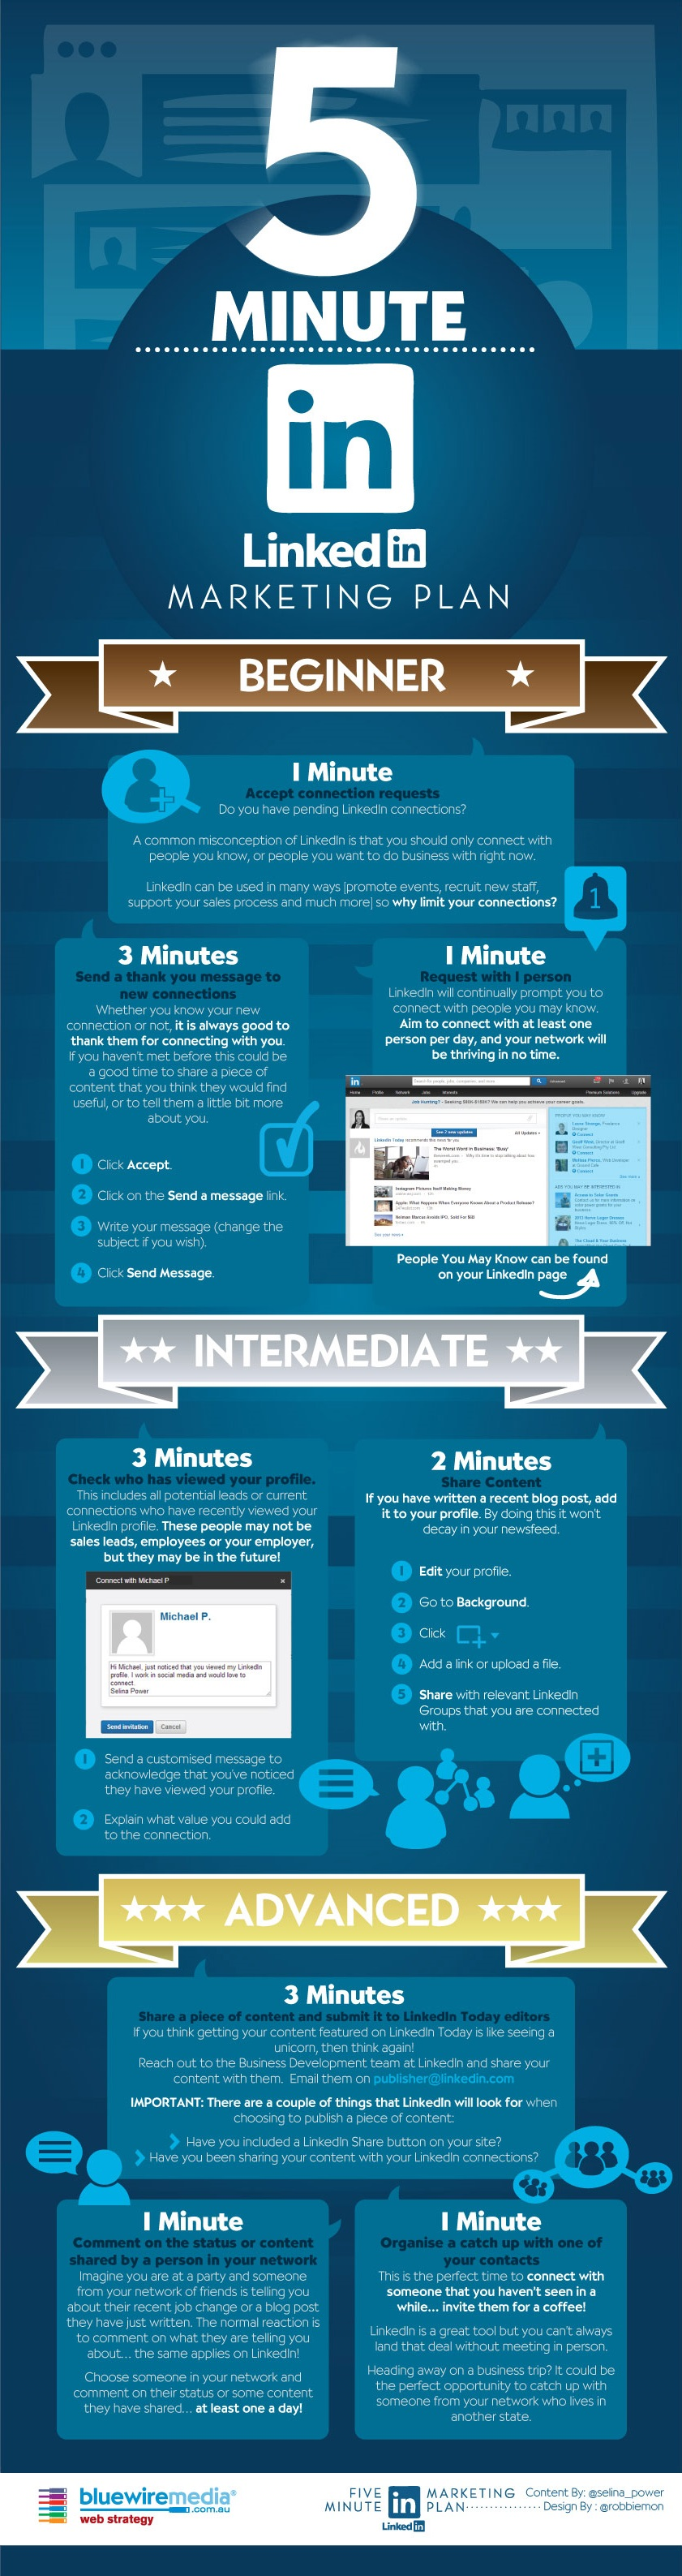 5 Minute Linkedin Mangement Plan for Users of All Levels [Infographic]